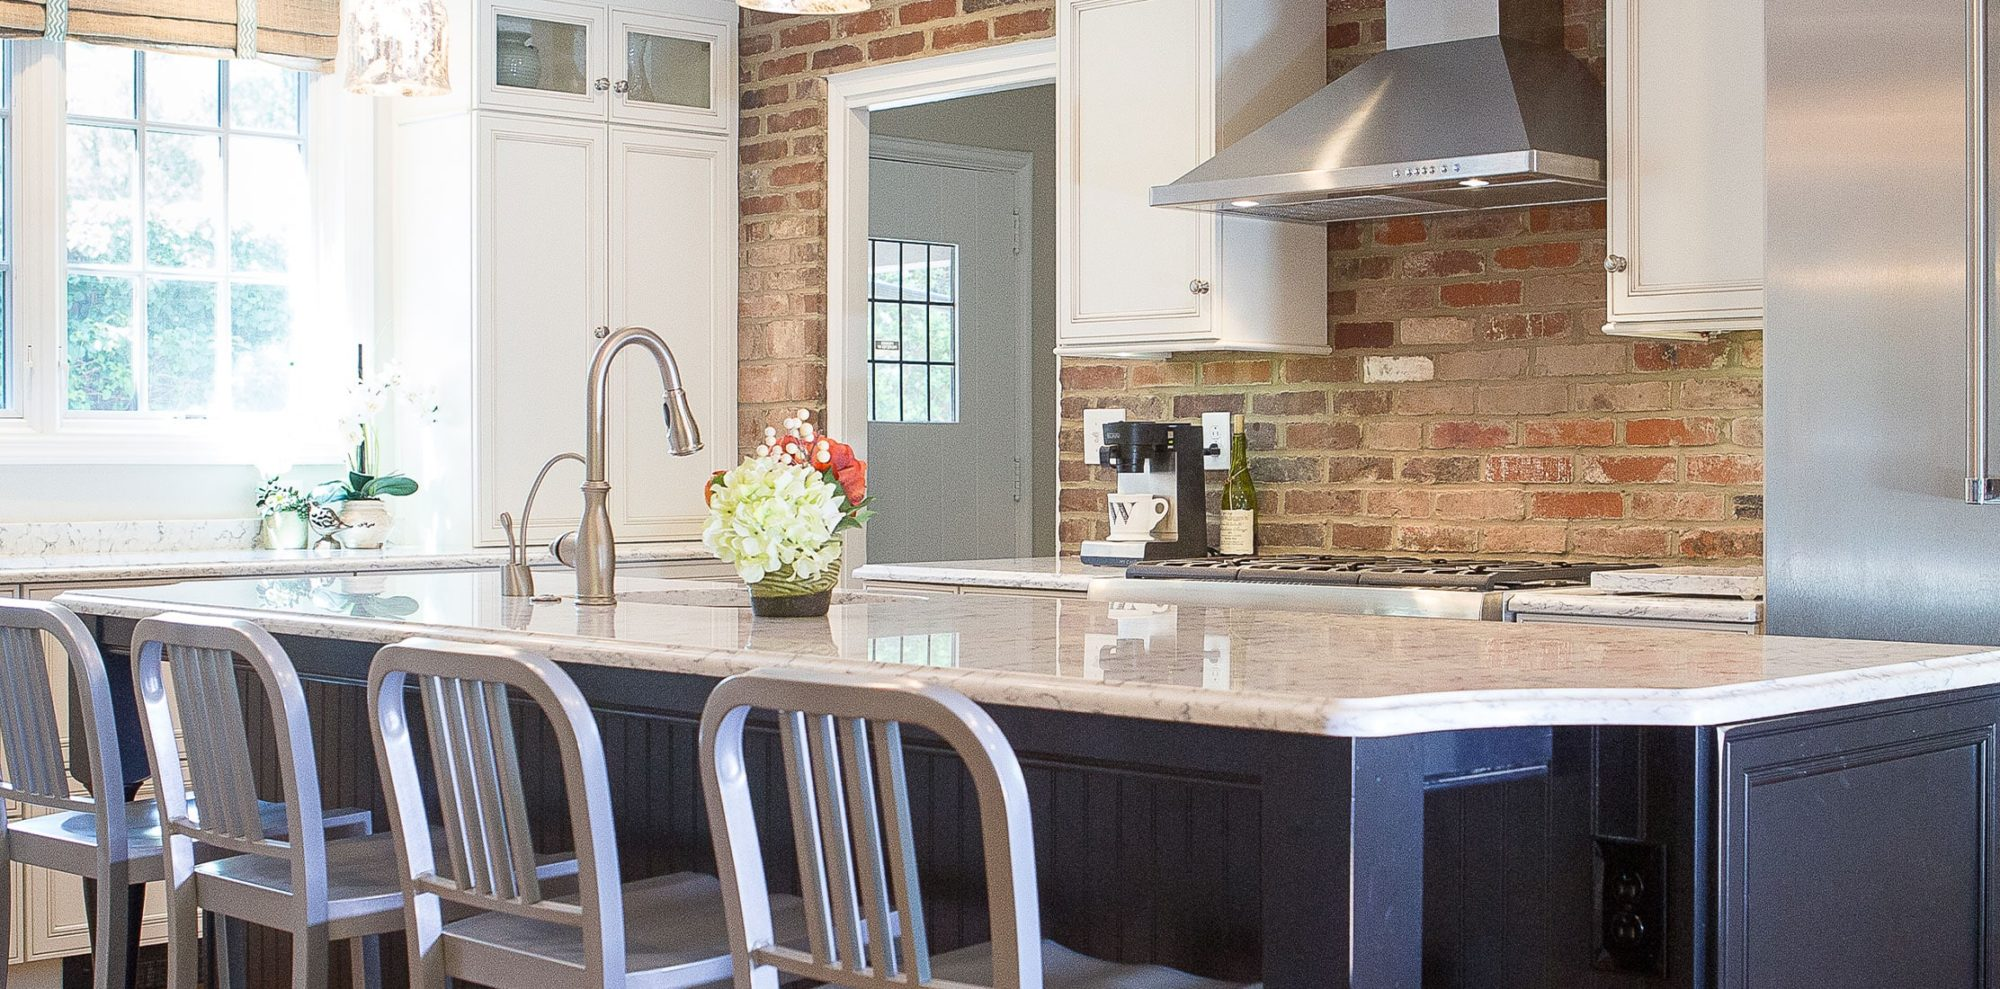 Warm marble counter tops meet brick wall in renovated kitchen